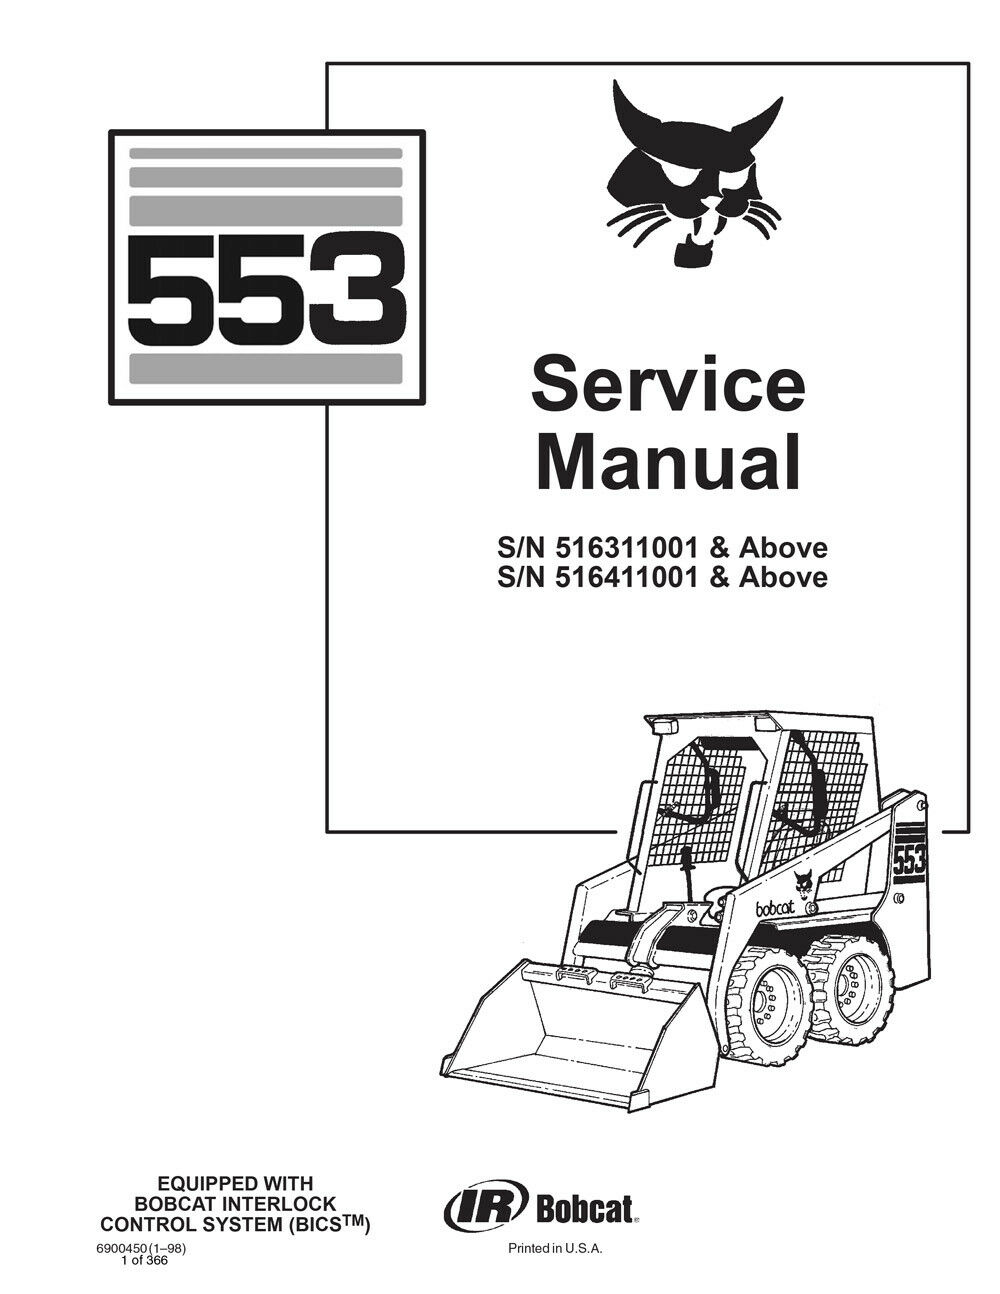 New Bobcat 553 Skid Steer Loader 1998 rev Repair Service